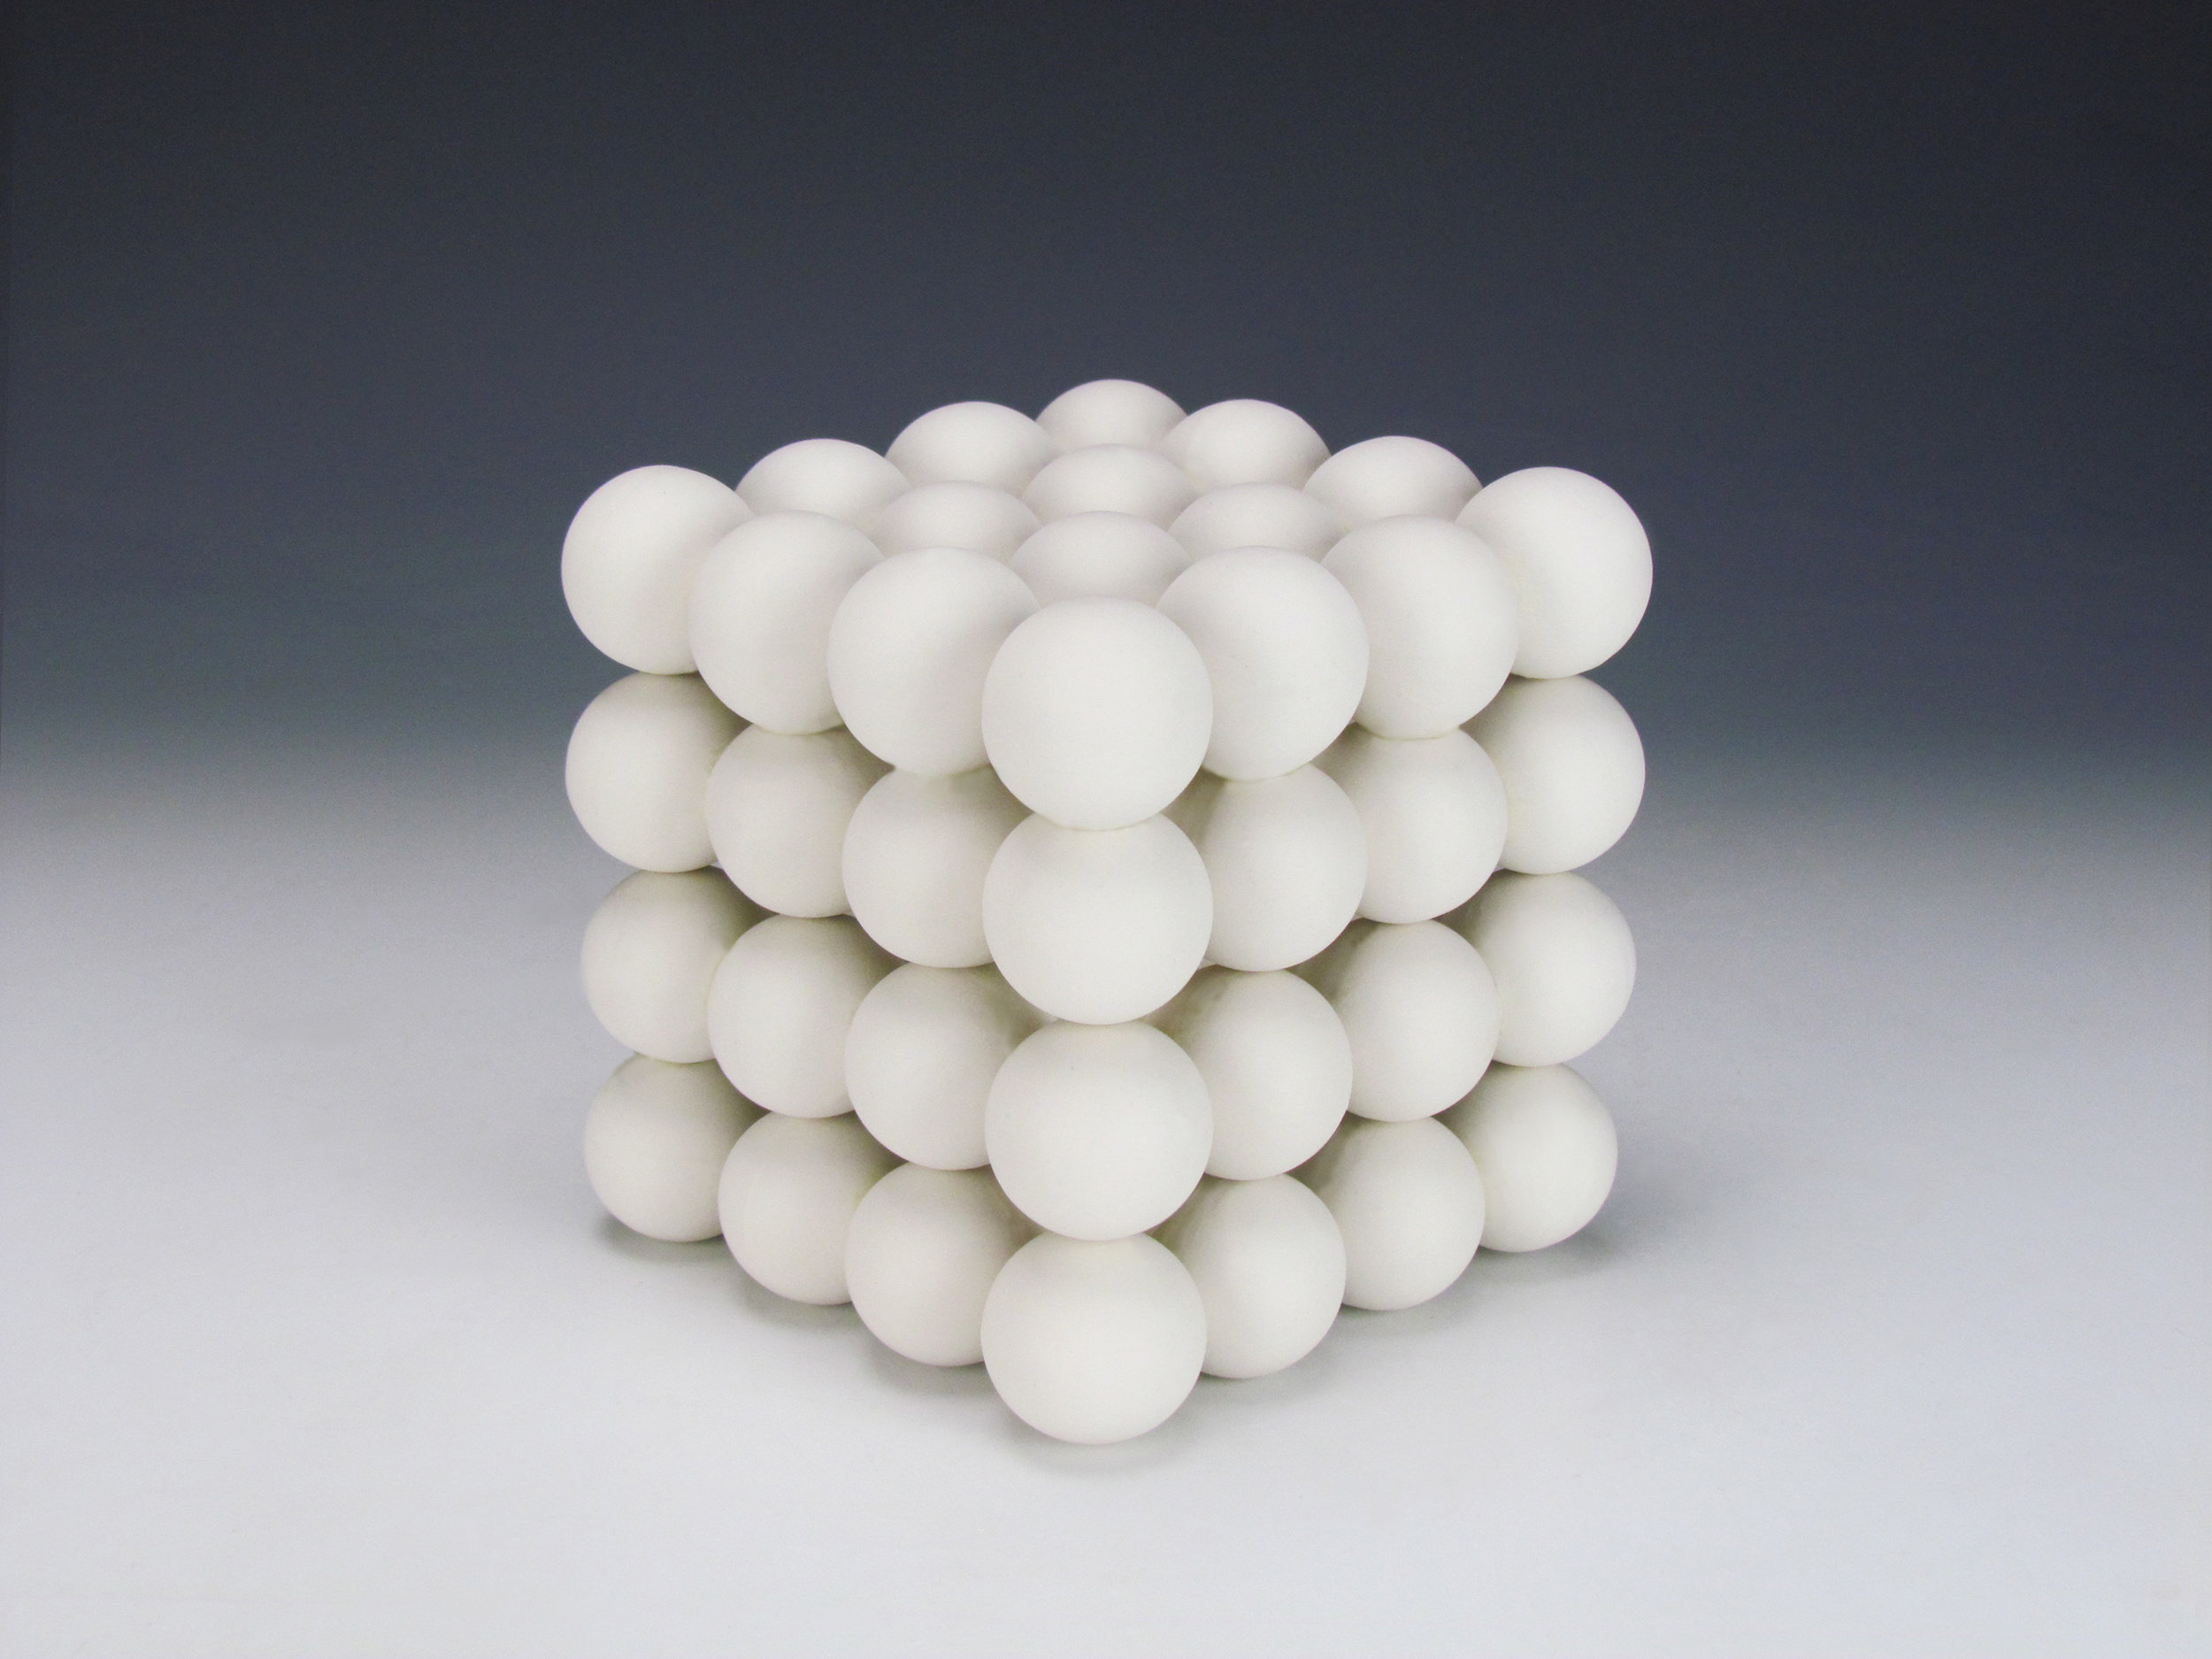 Ionic Series: Cubic Construction  |  6 x 6 x 6 inches  |  Porcelain  |  2016